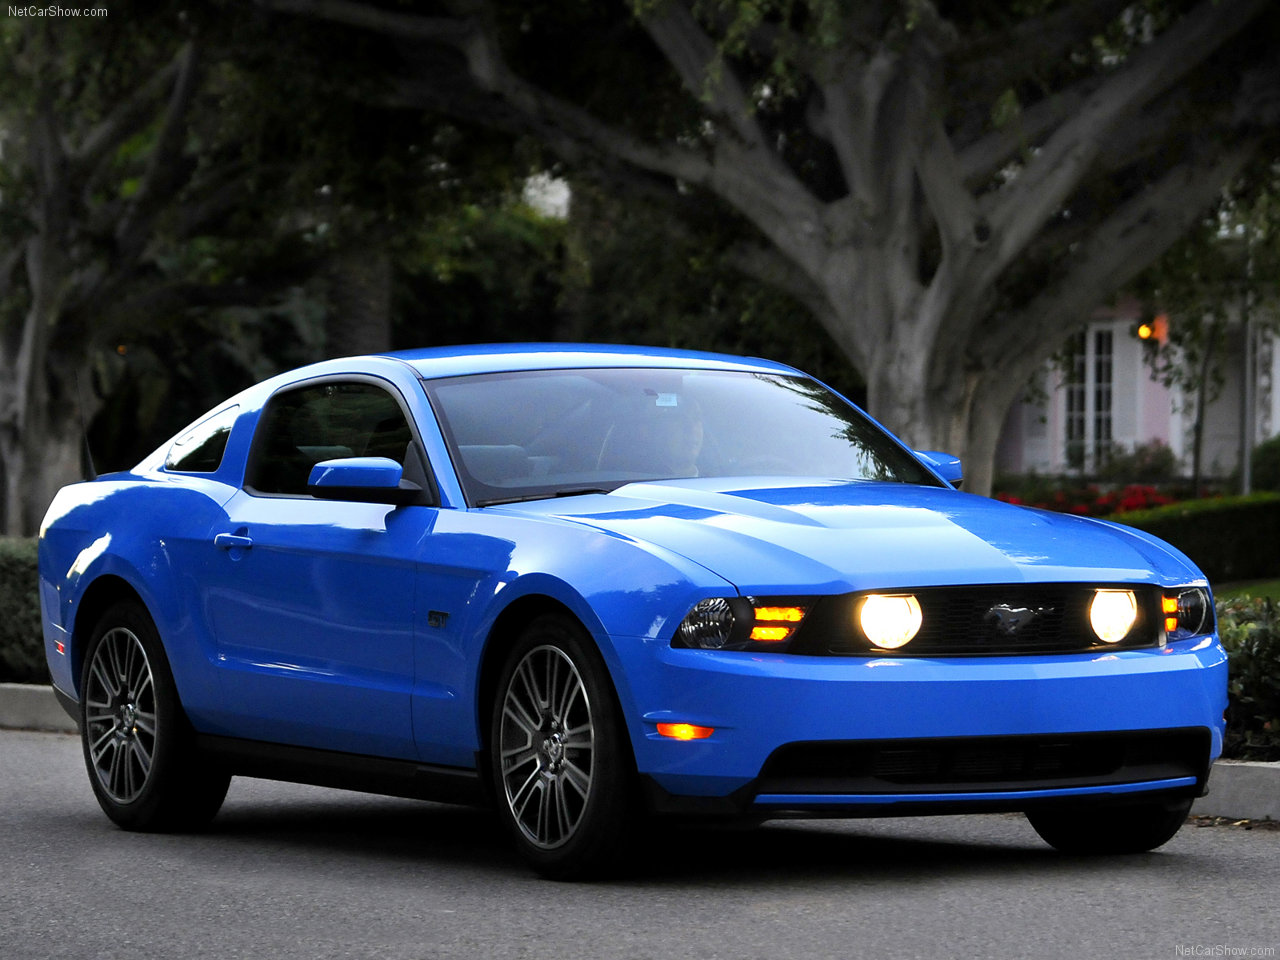 Just my Desktop Ford Mustang 2010 1280x960